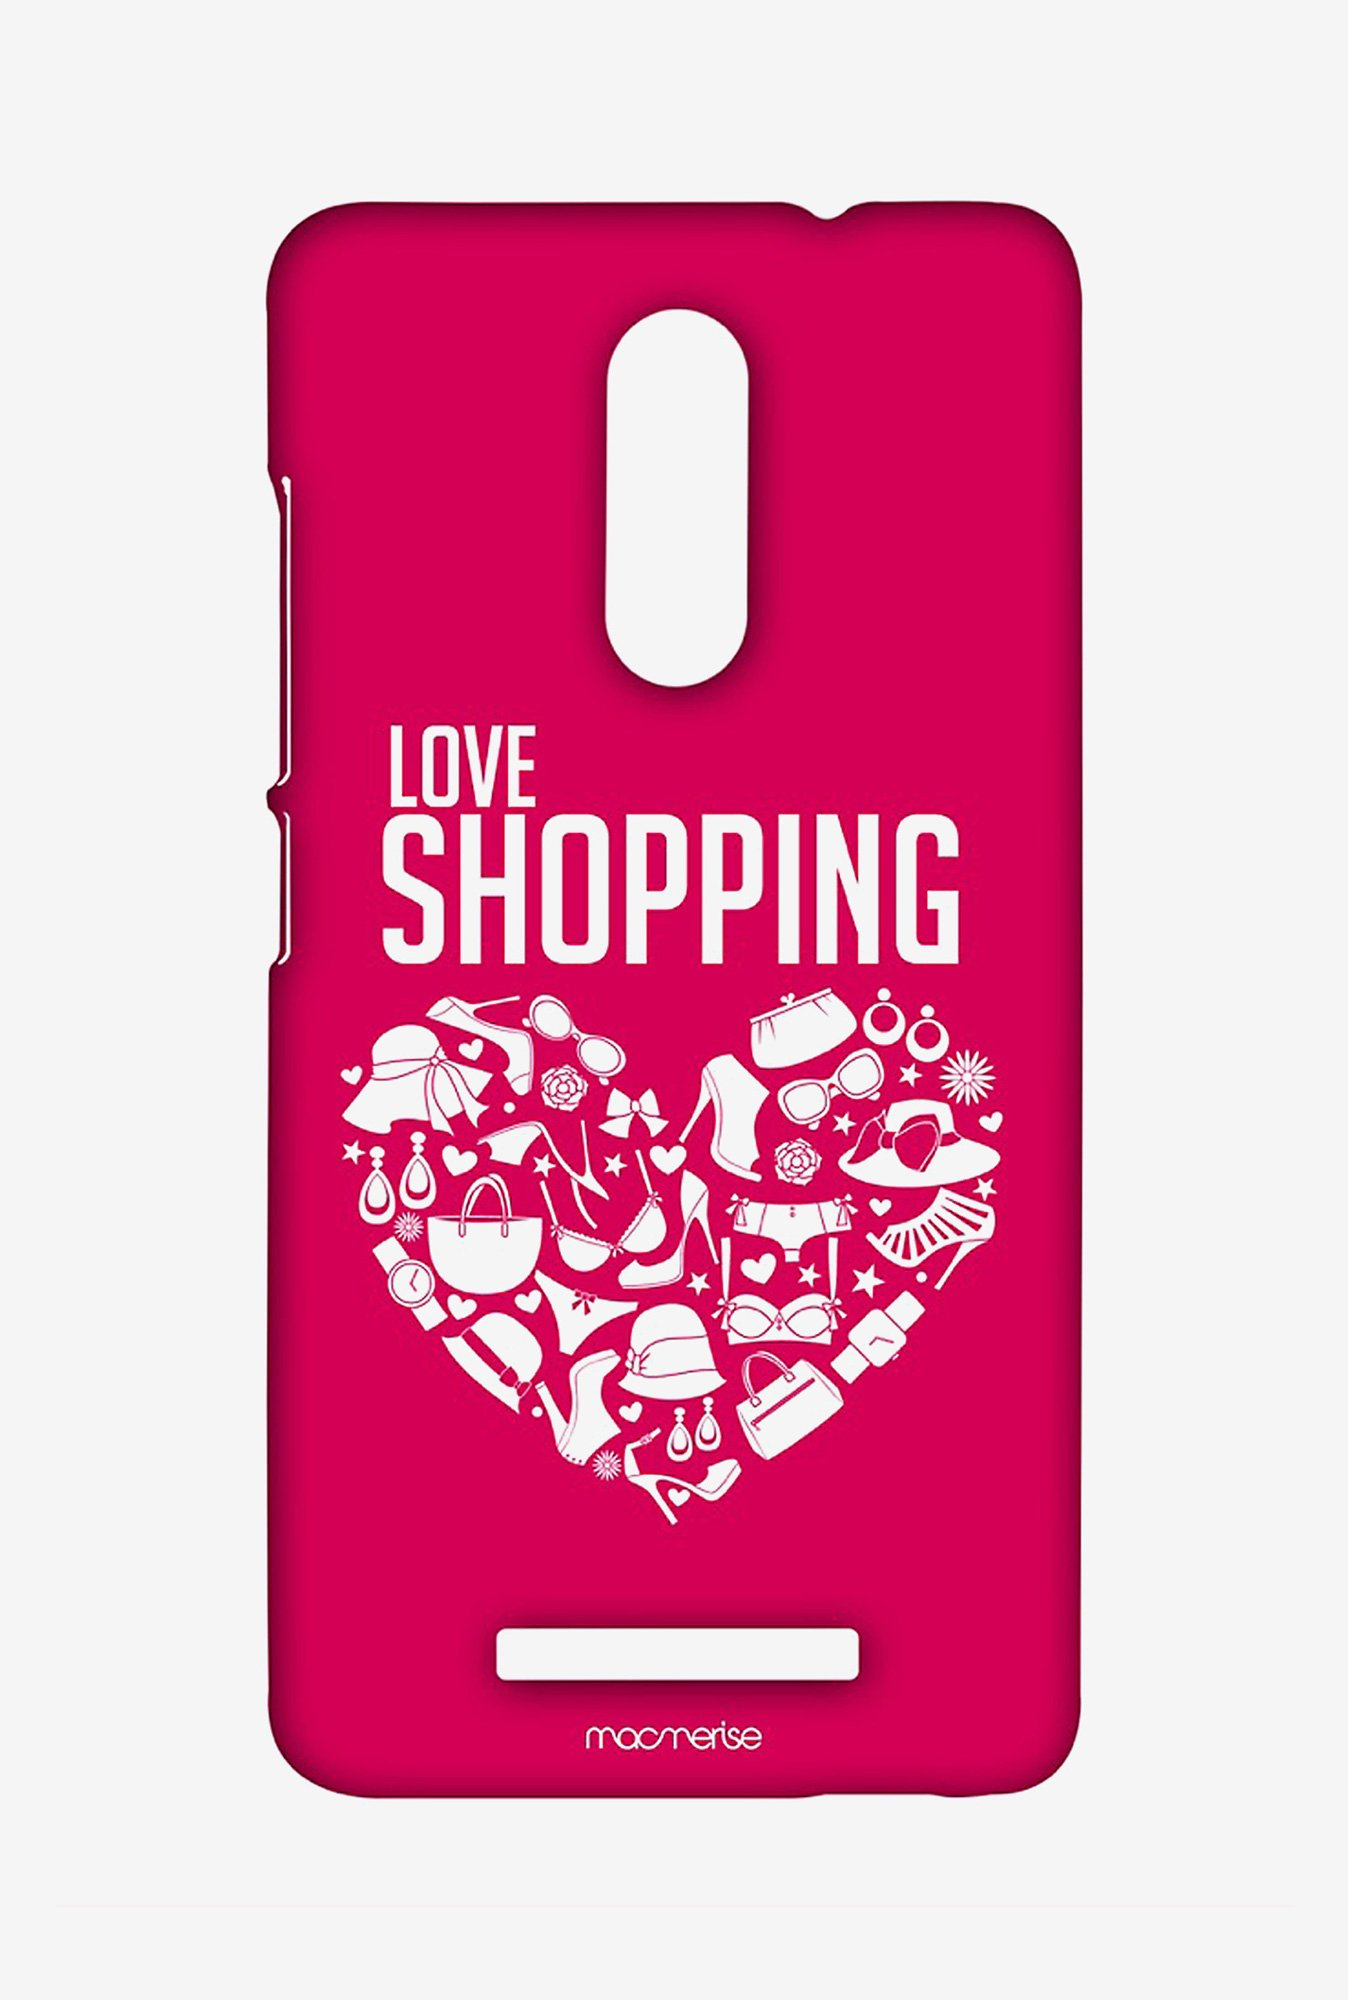 Macmerise XACN3SMI0524 Love Shopping Sublime Case for Xiaomi Redmi Note 3